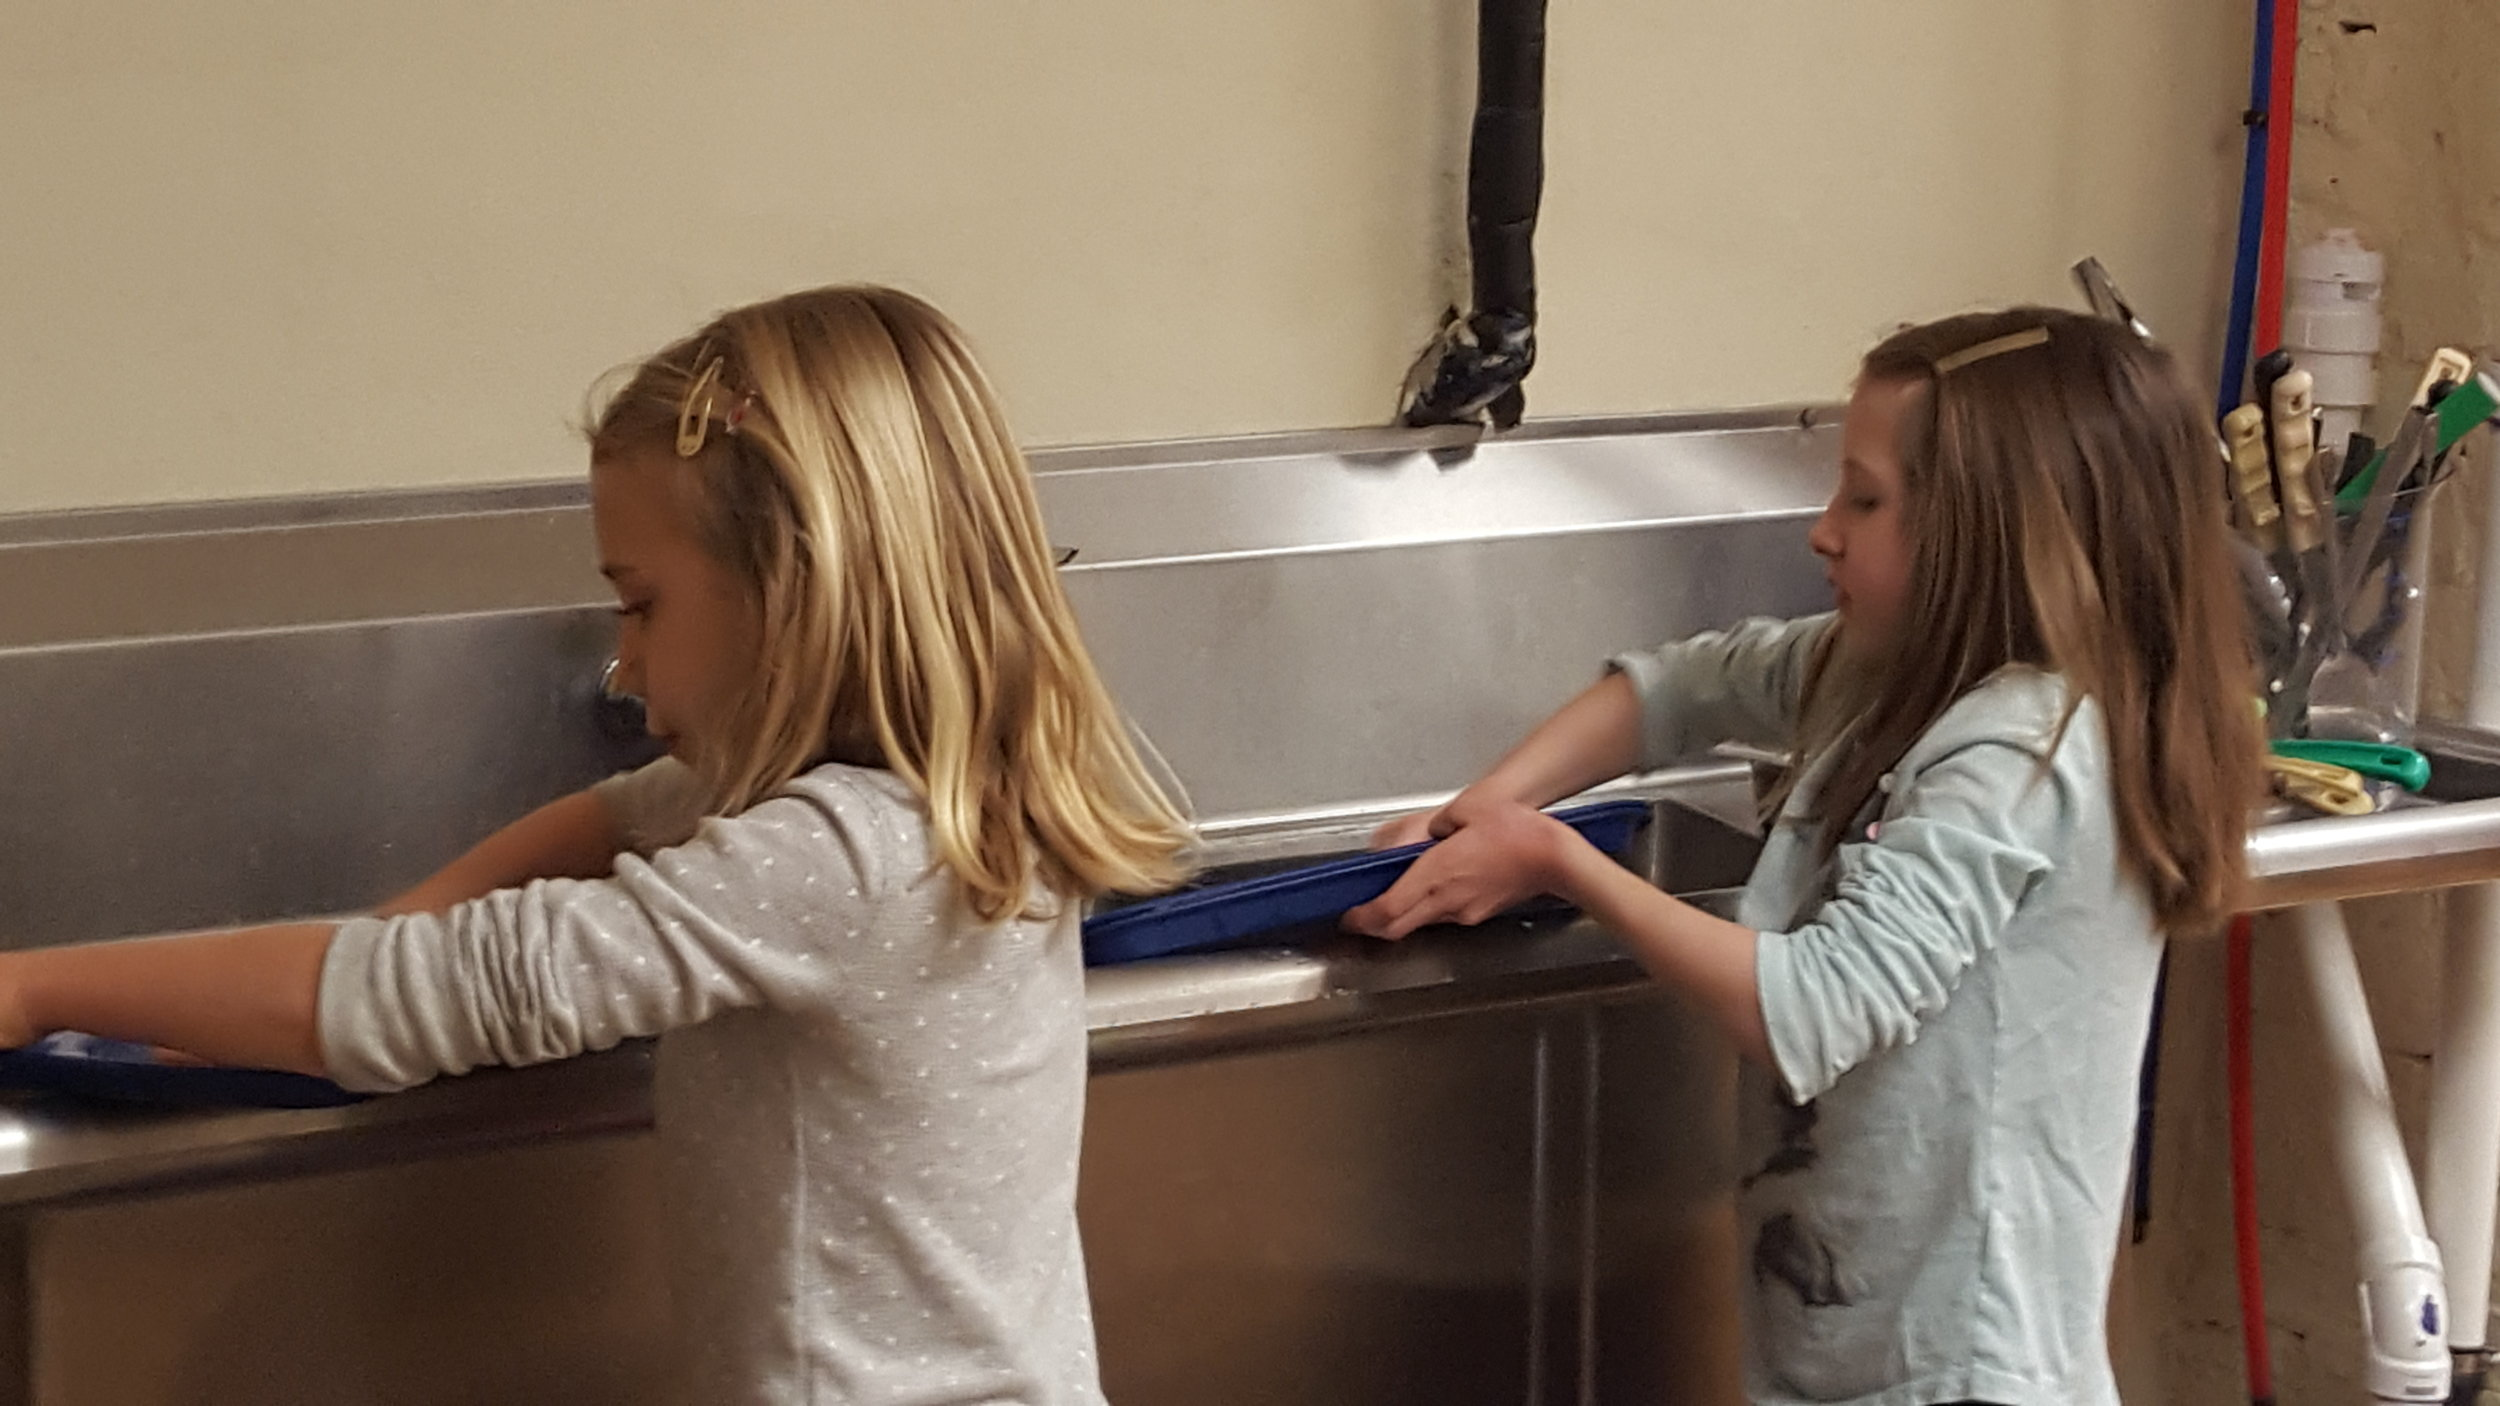 Brownie Troop 1-23-17 bag cleaning 3.jpg